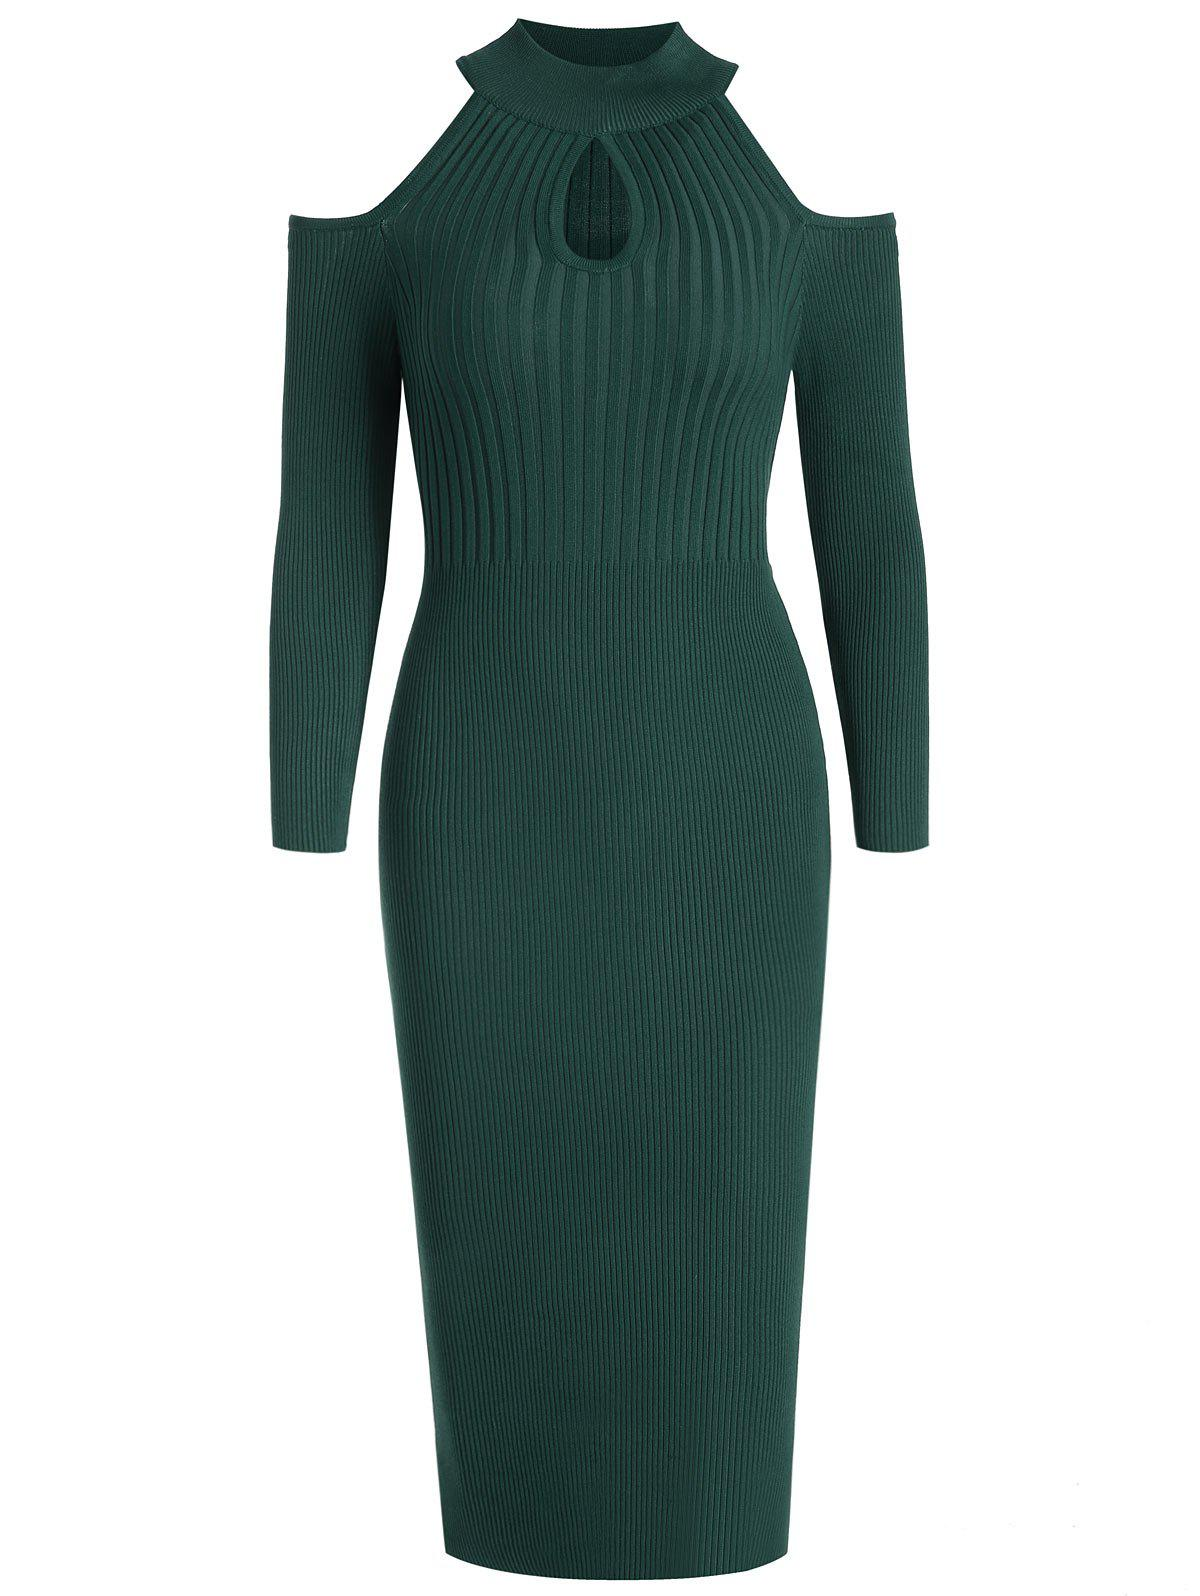 Women's Stand Collar Dew Shoulder Long Sleeved Bodycon Dress - DEEP GREEN M